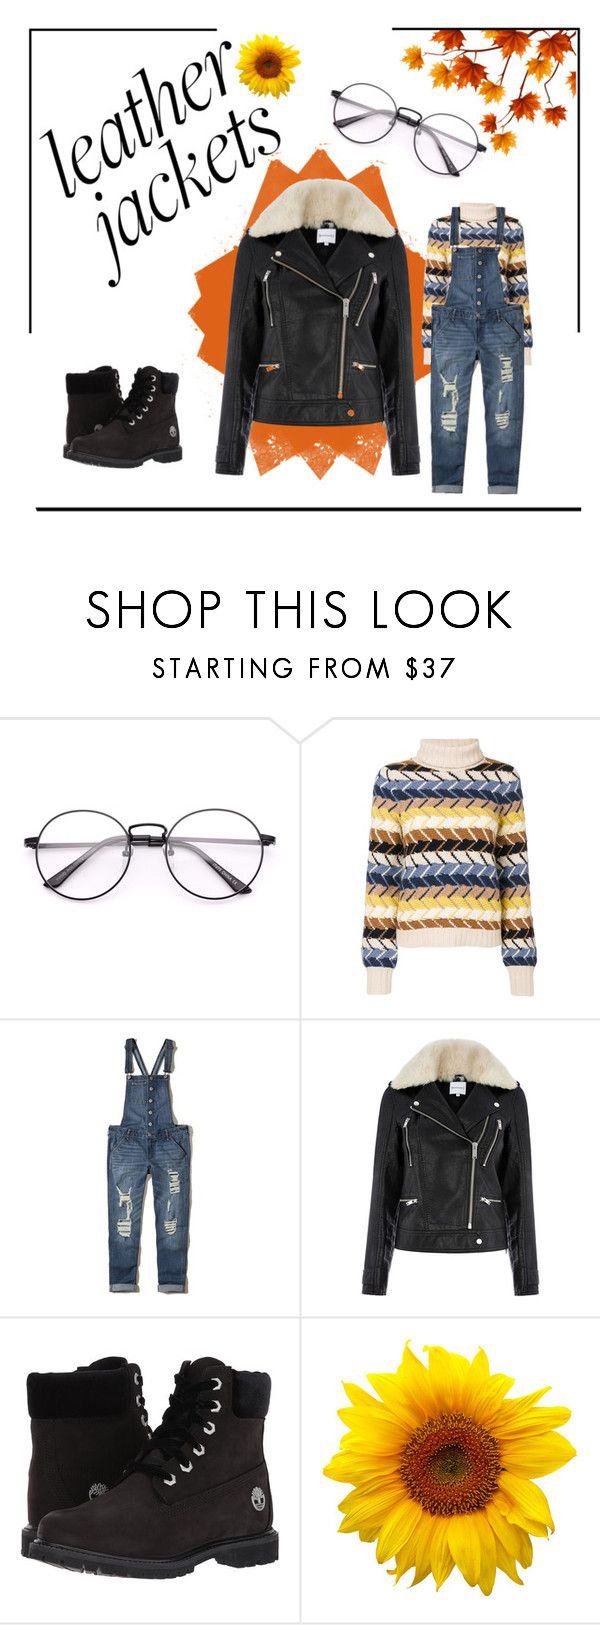 """""""Leather Jackets"""" by xlordabbyis ❤ liked on Polyvore featuring Chloé, Hollister Co., Warehouse and Timberland"""